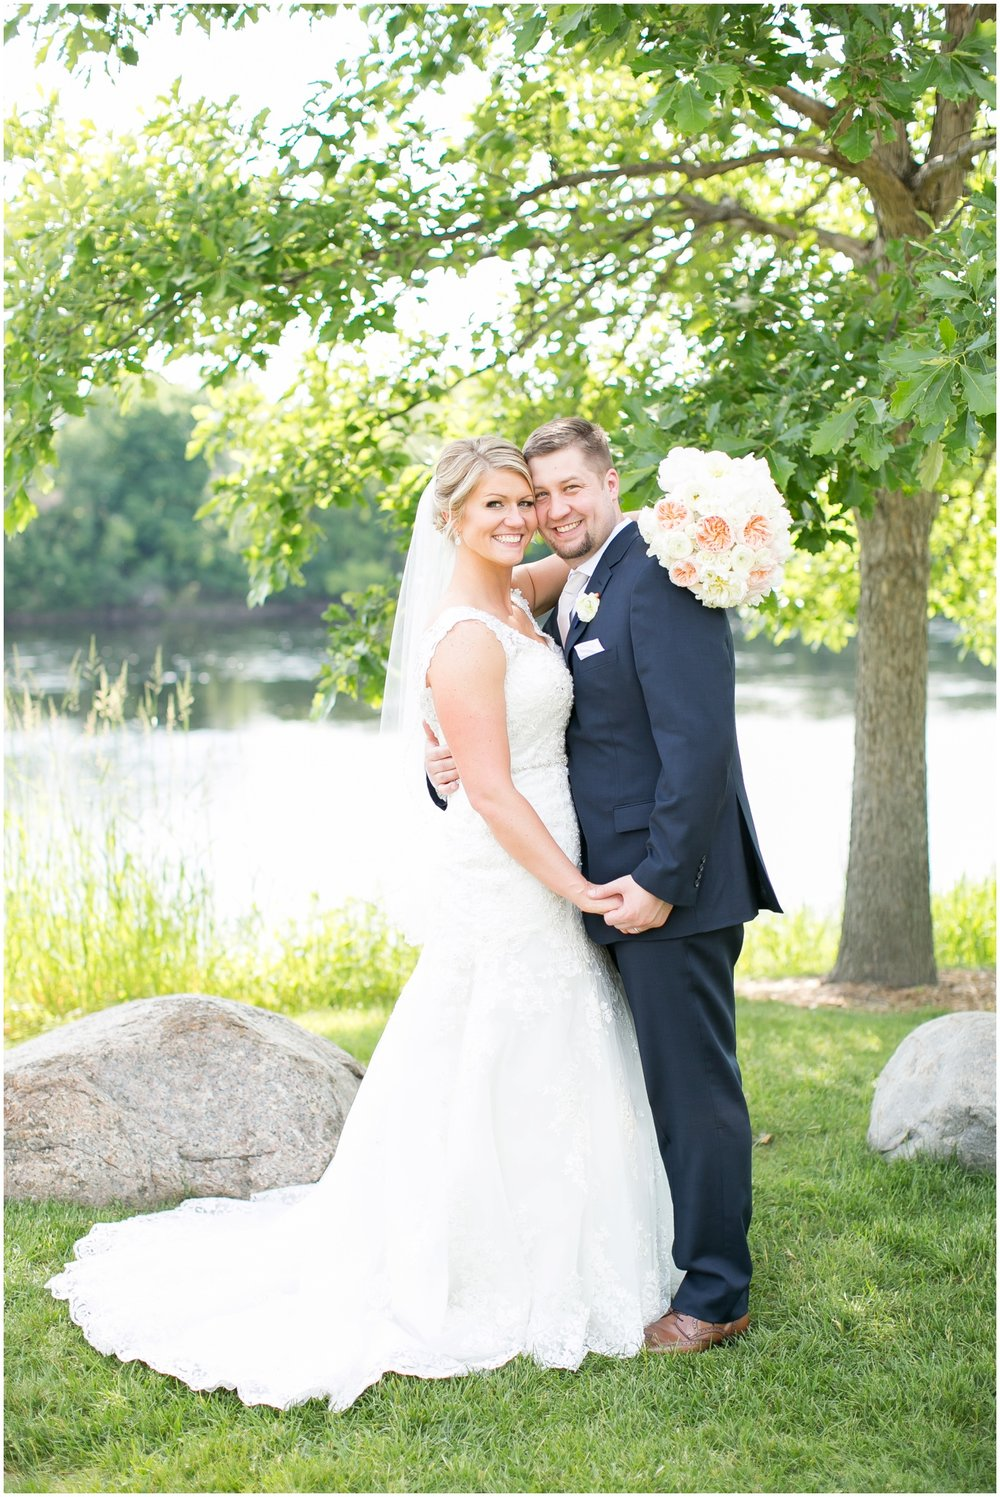 Eau_Claire_Wisconsin_The_Florian_Garden_Wedding_3262.jpg